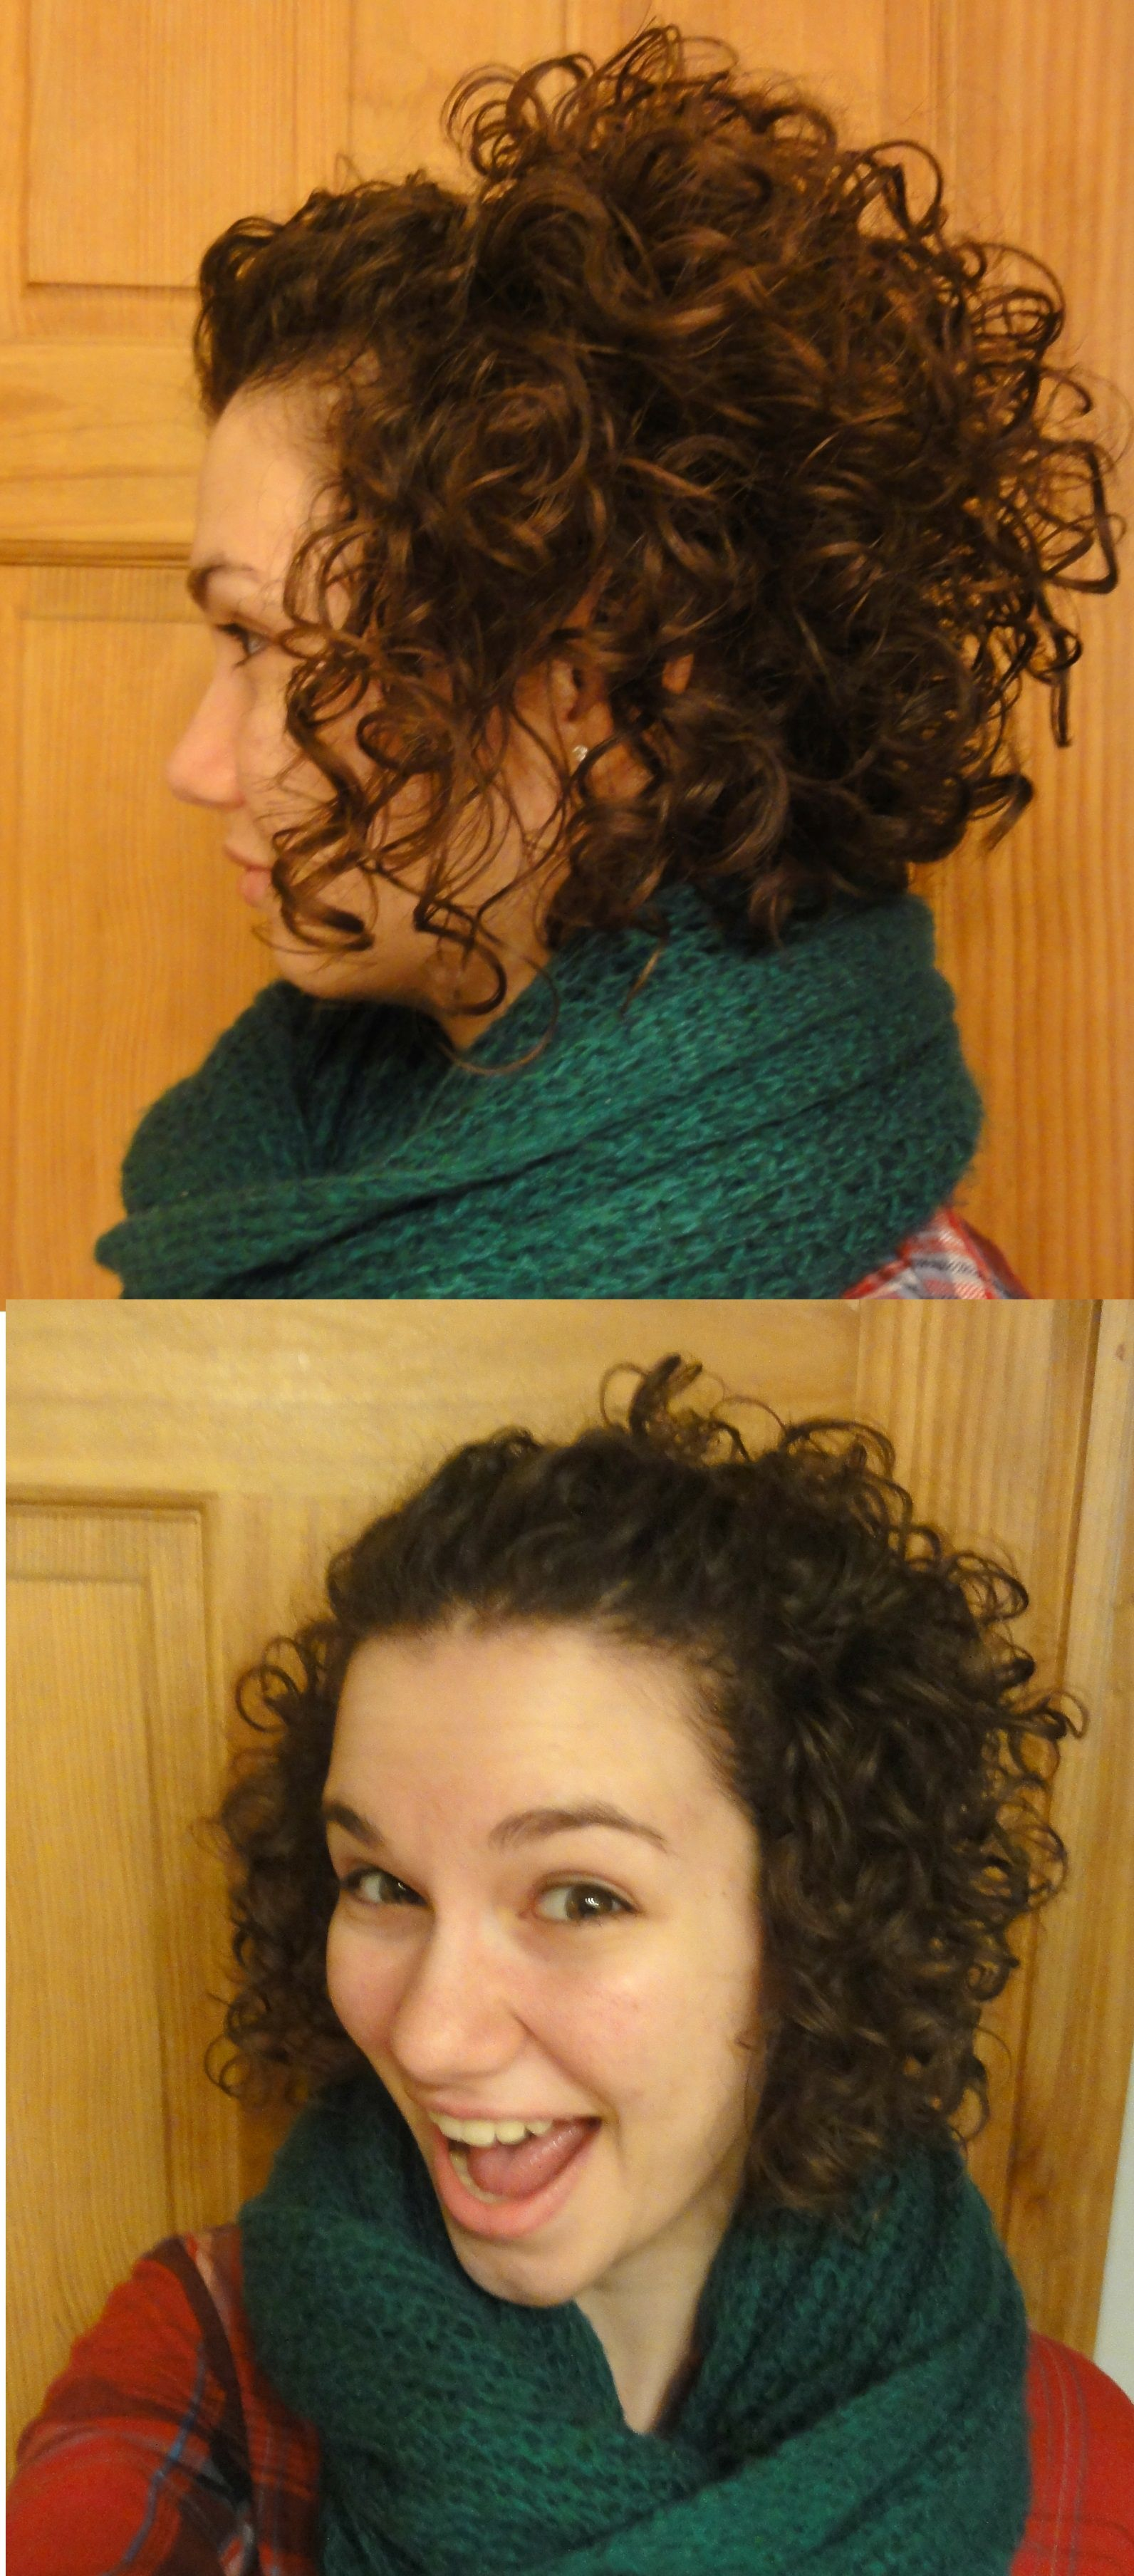 Cute Hairdo For Short Curly Hair Pin Back The Top Part